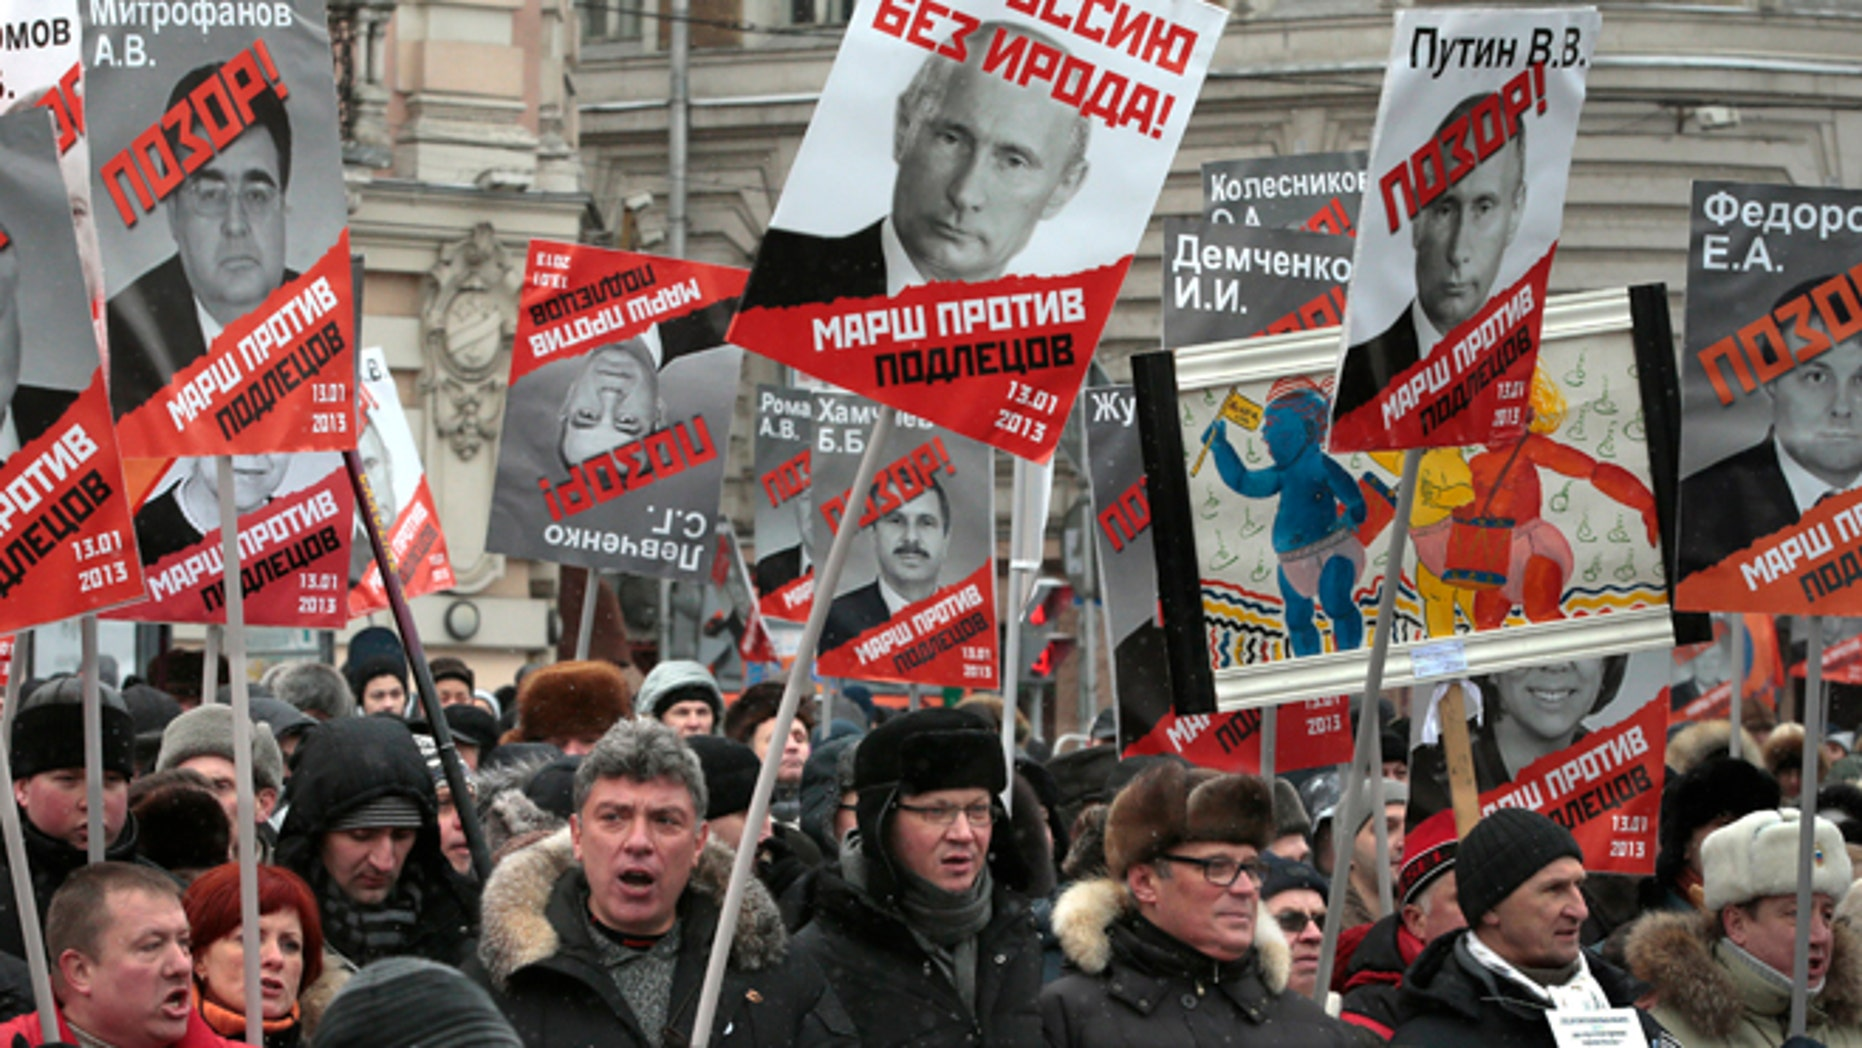 """Some thousands of people are gathering in central Moscow for a protest against Russia's new law banning Americans from adopting Russian children, carrying posters of President Vladimir Putin and members of Russia's parliament who overwhelmingly voted for the law last month, with the word """"Shame"""" written in red over the faces."""